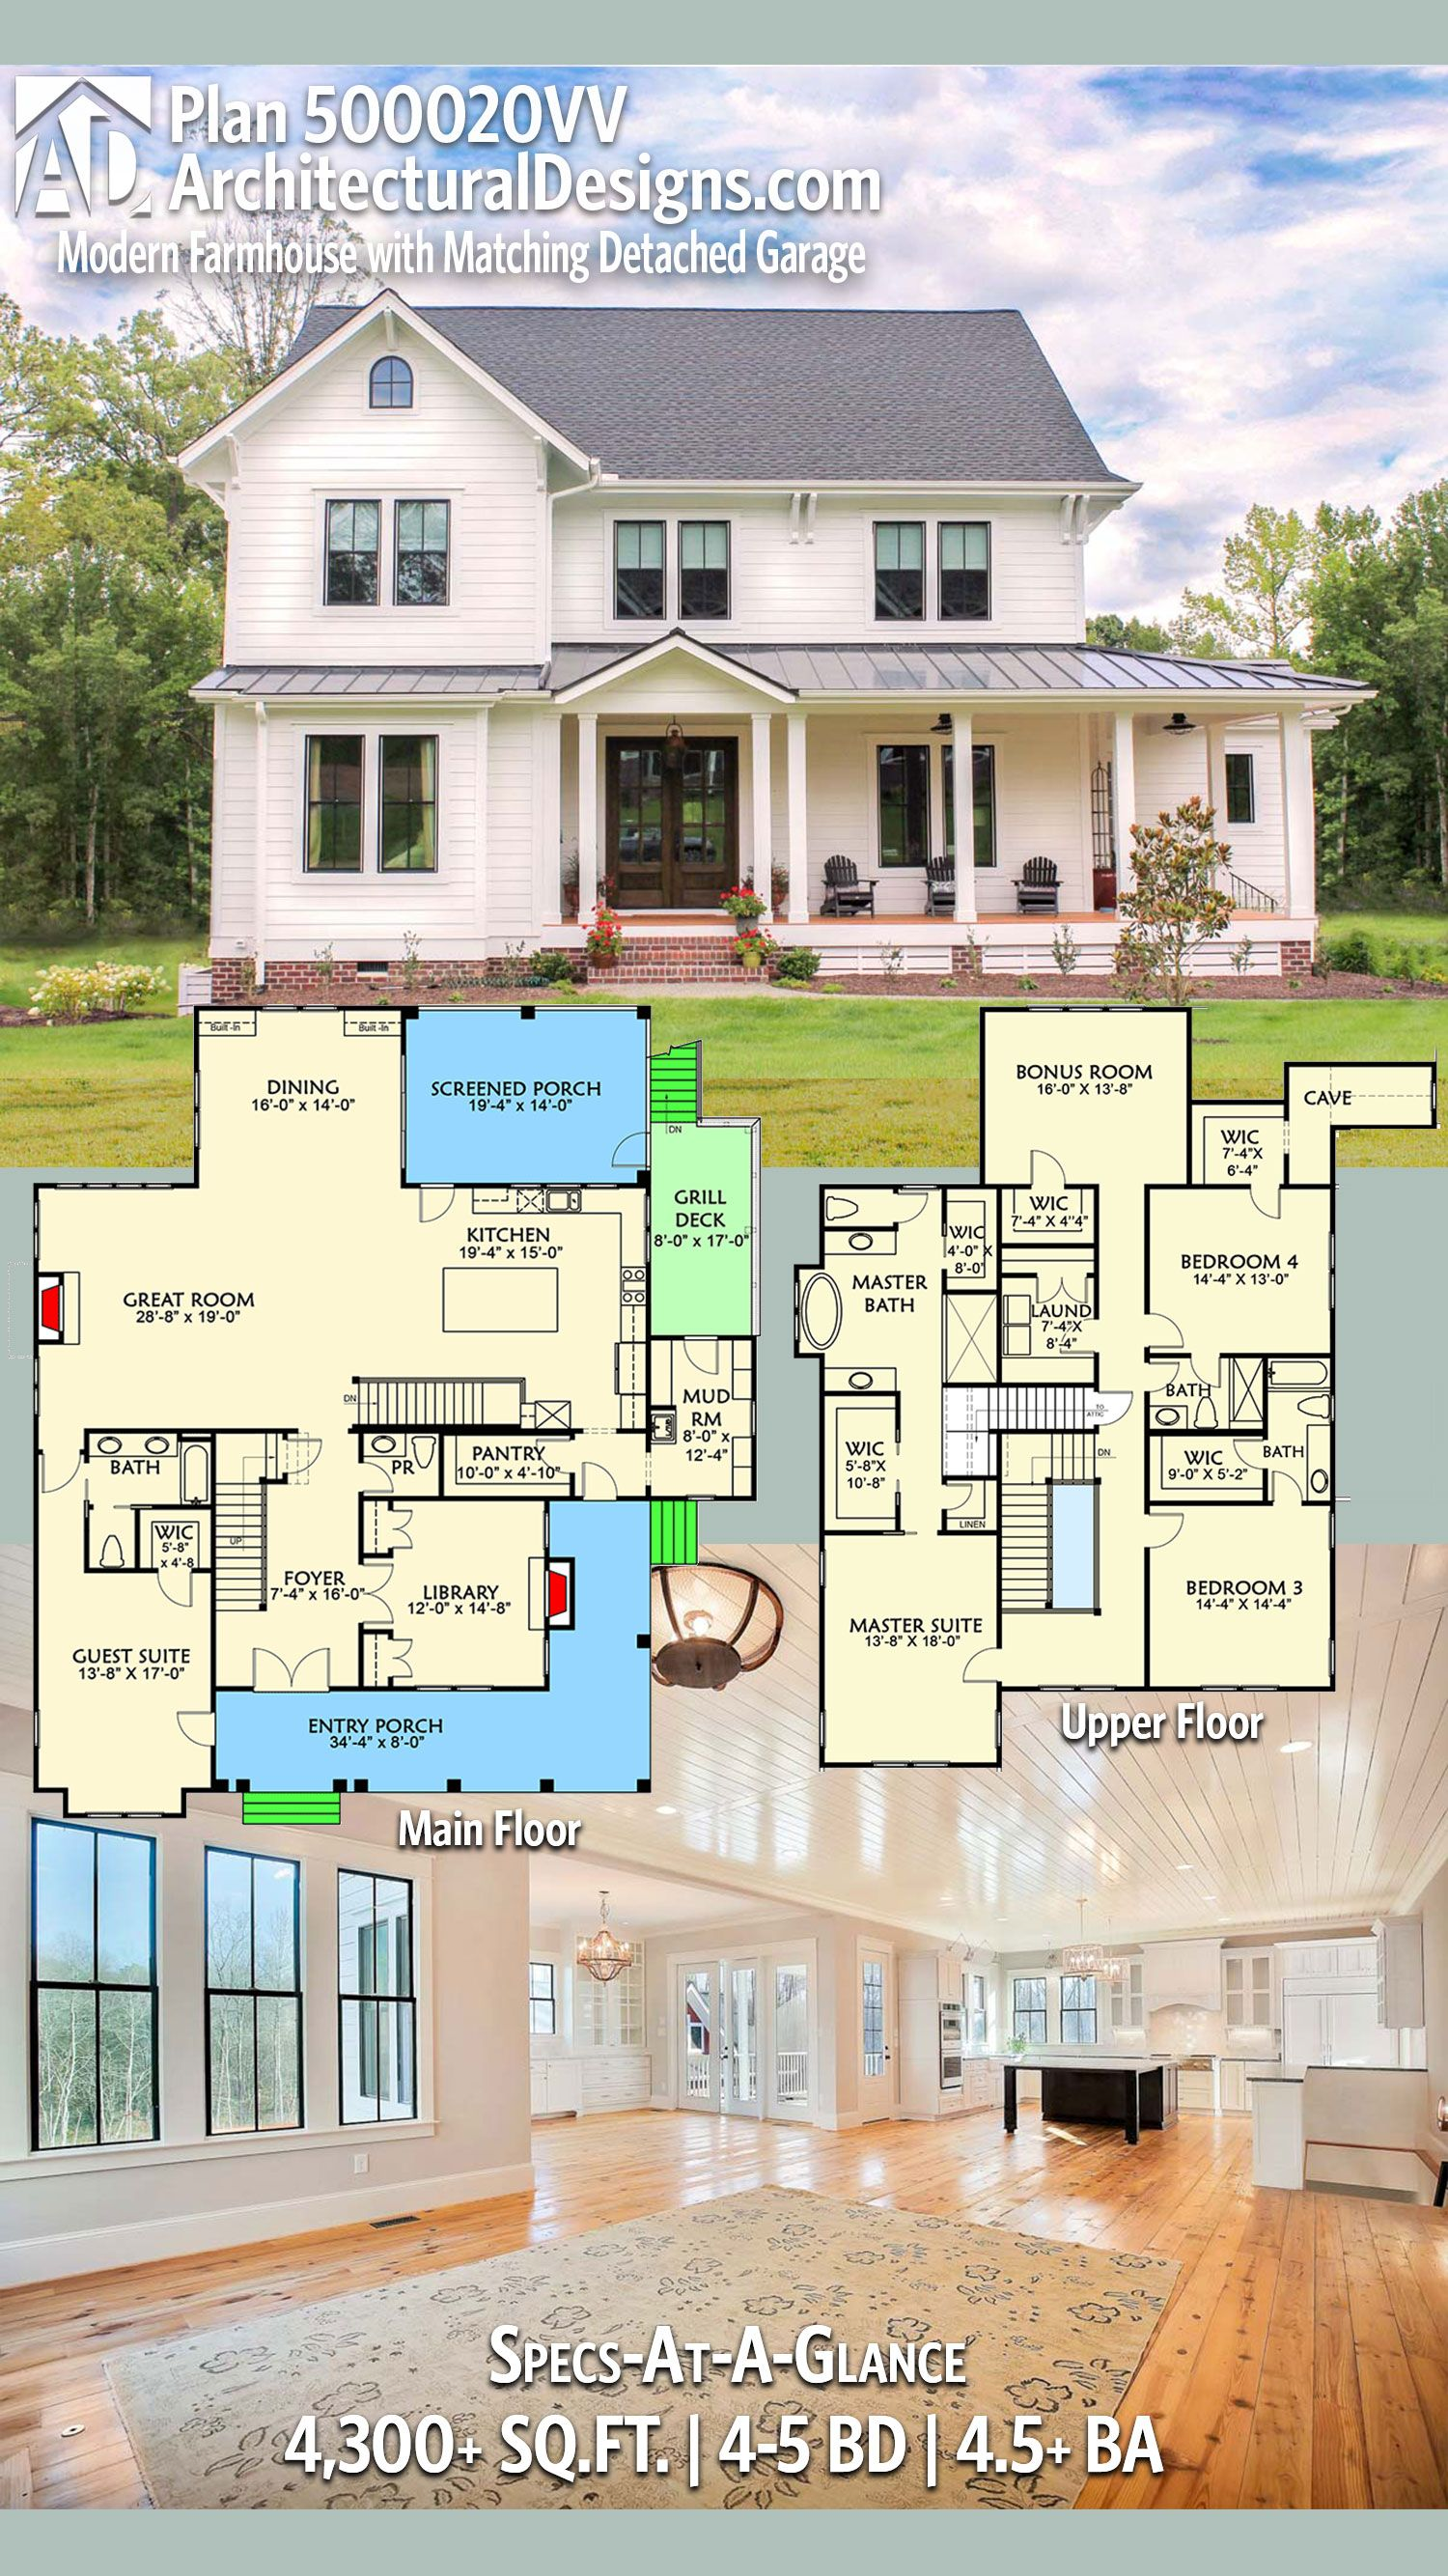 Plan 500020vv Modern Farmhouse Plan With Matching Detached Garage Modern Farmhouse Plans Farmhouse Layout Farmhouse Plans